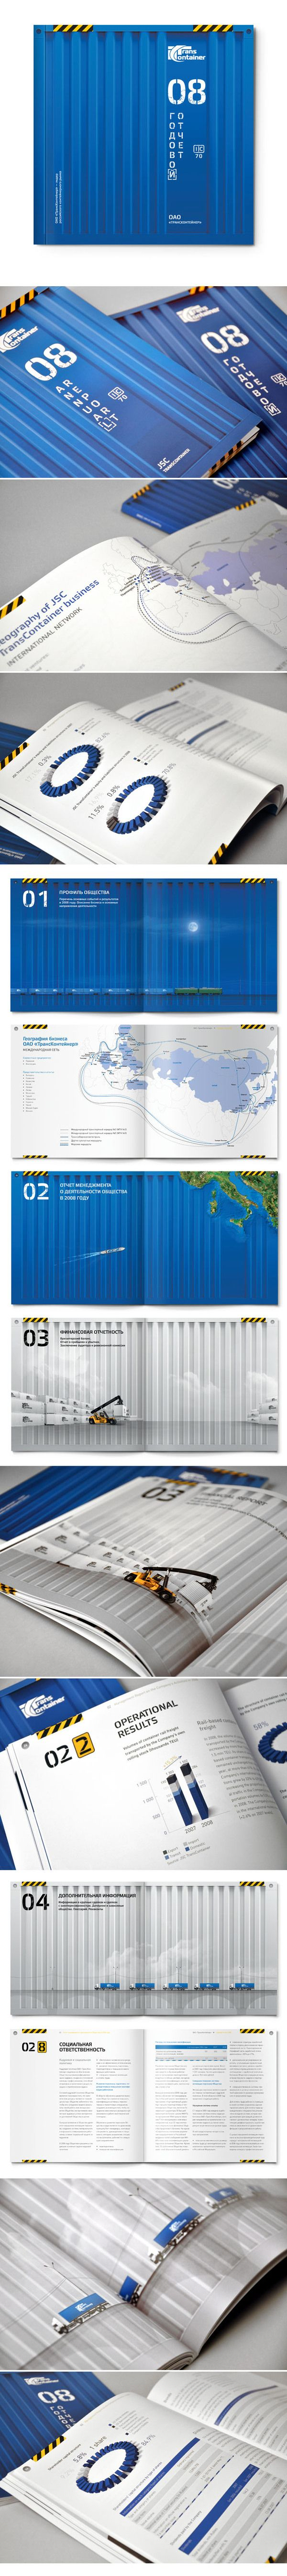 Transcontainer Annual Report